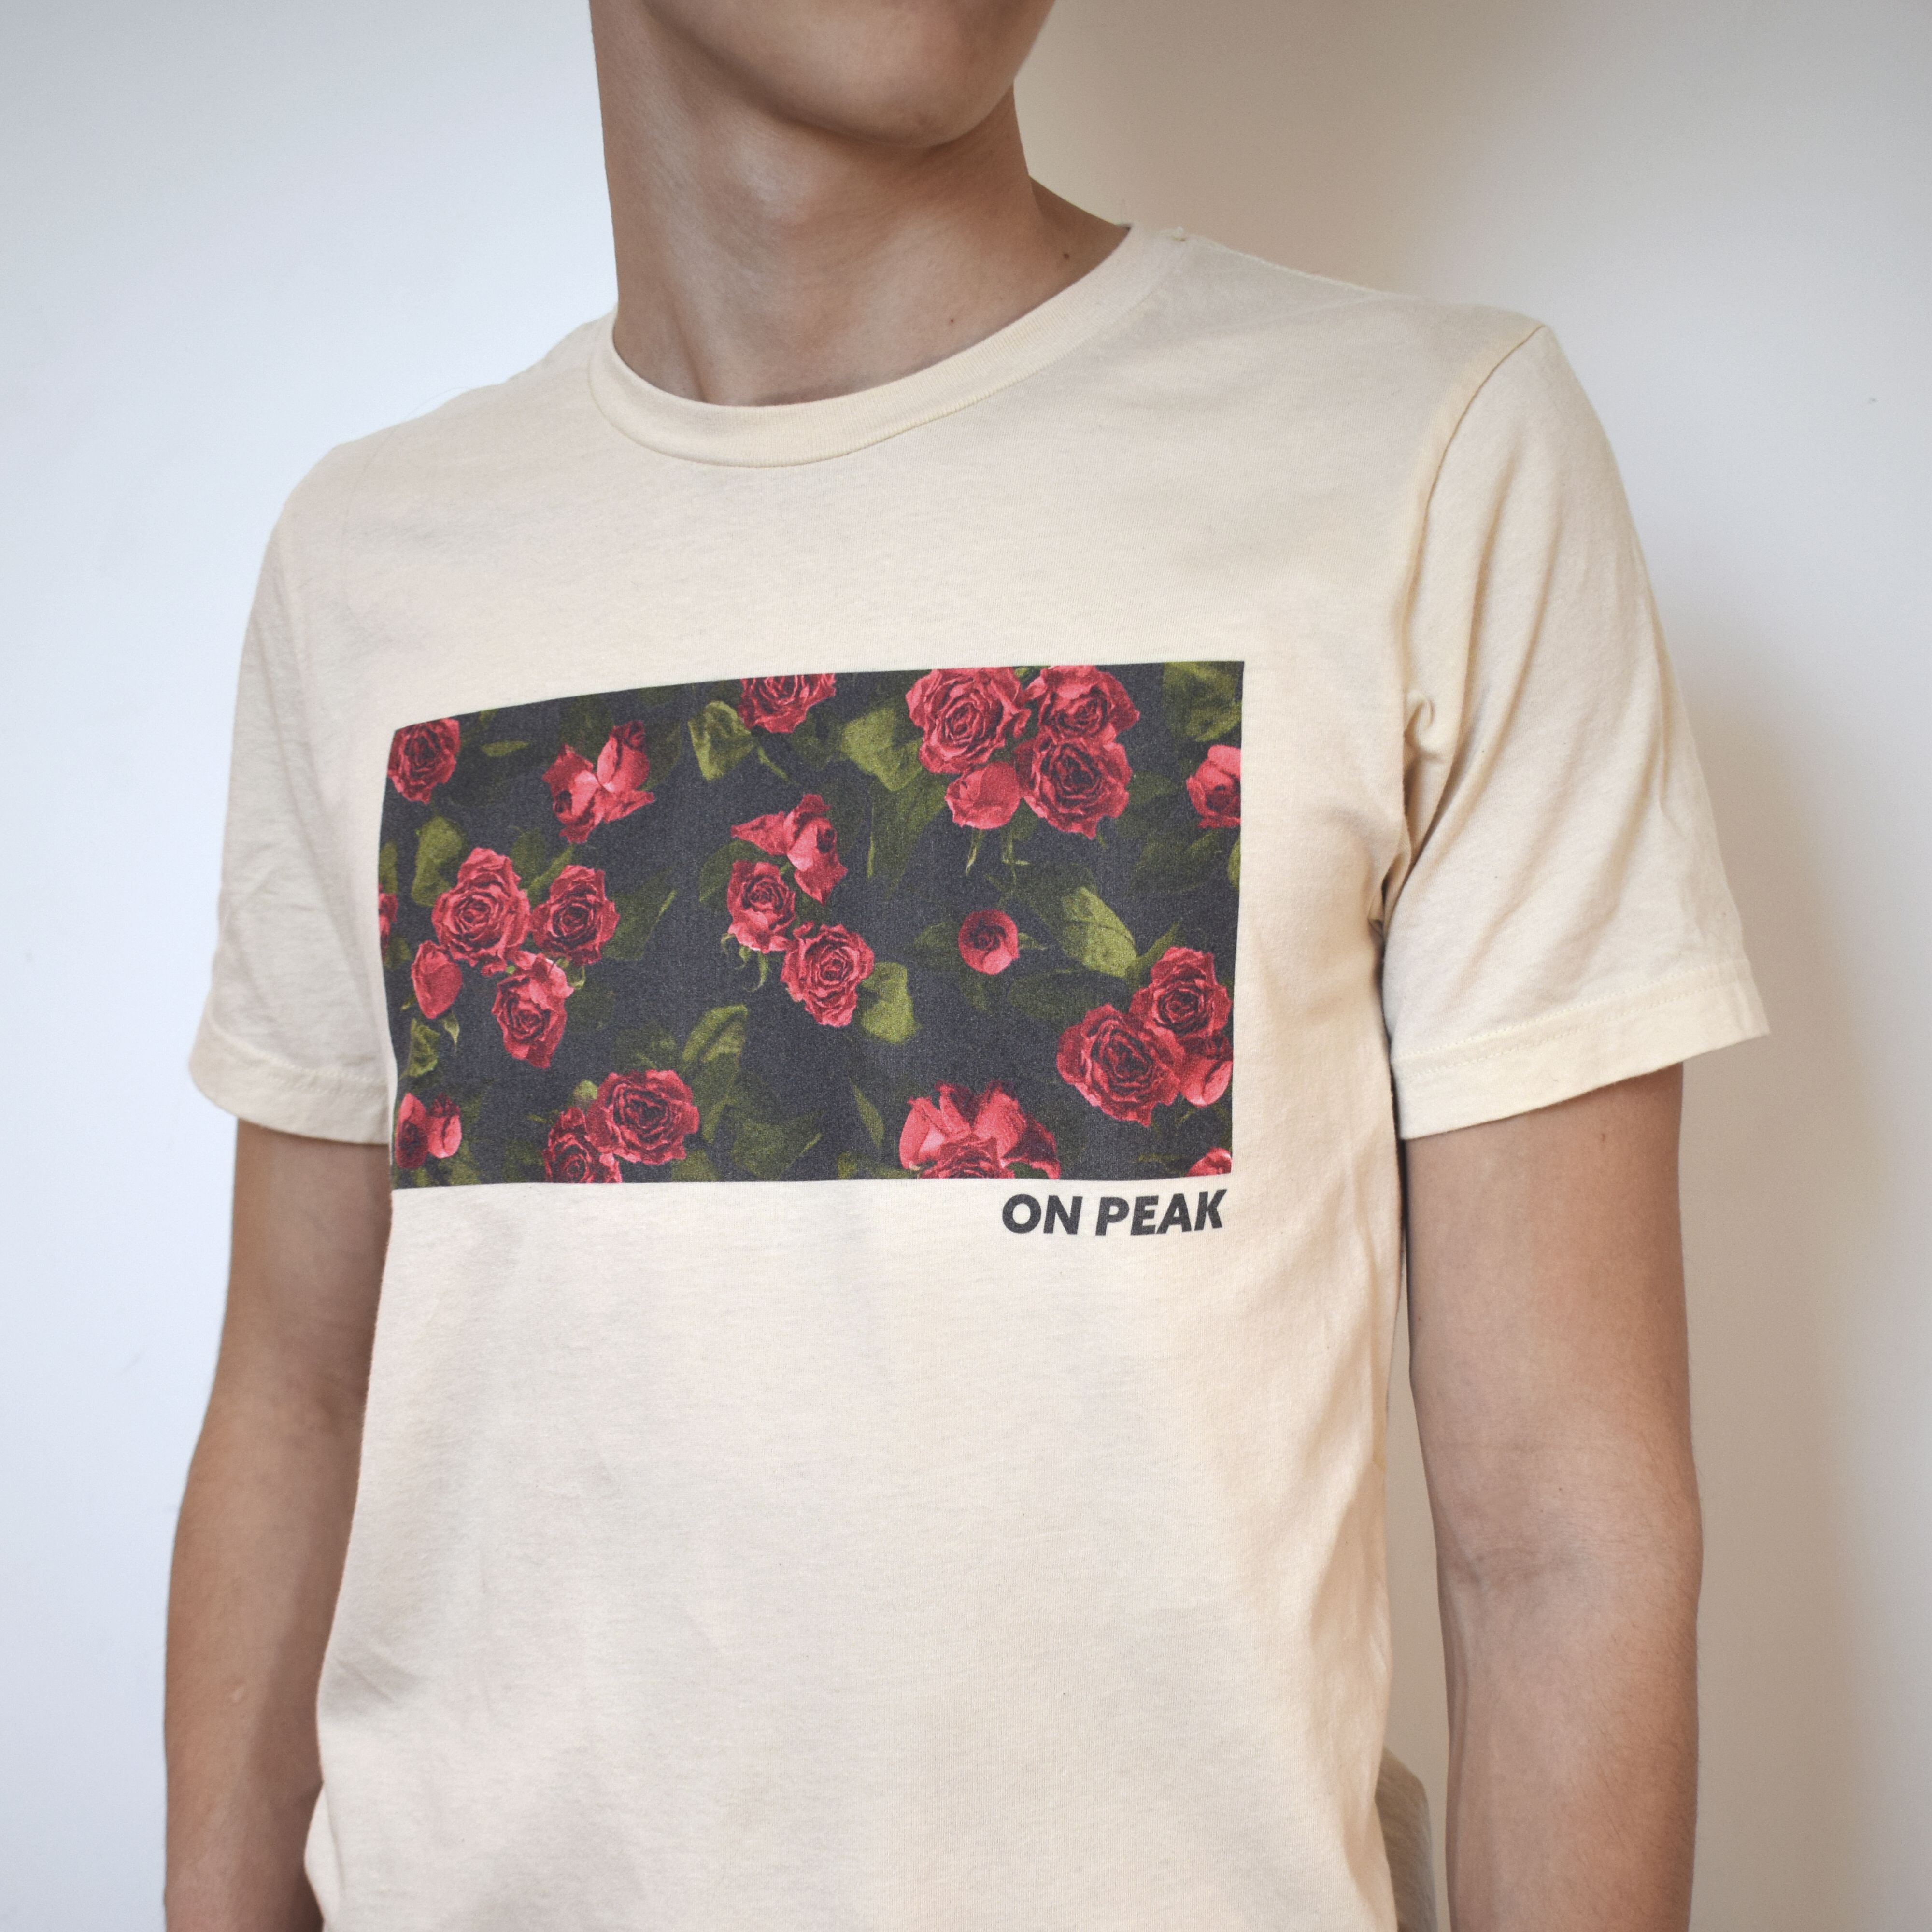 Roses Floral Unisex T Shirt Indie Graphic Print Aesthetic Tee Beige Summer Shirt Urban Outfitters Printed Shirts Printed Tees Black Graphic Tees